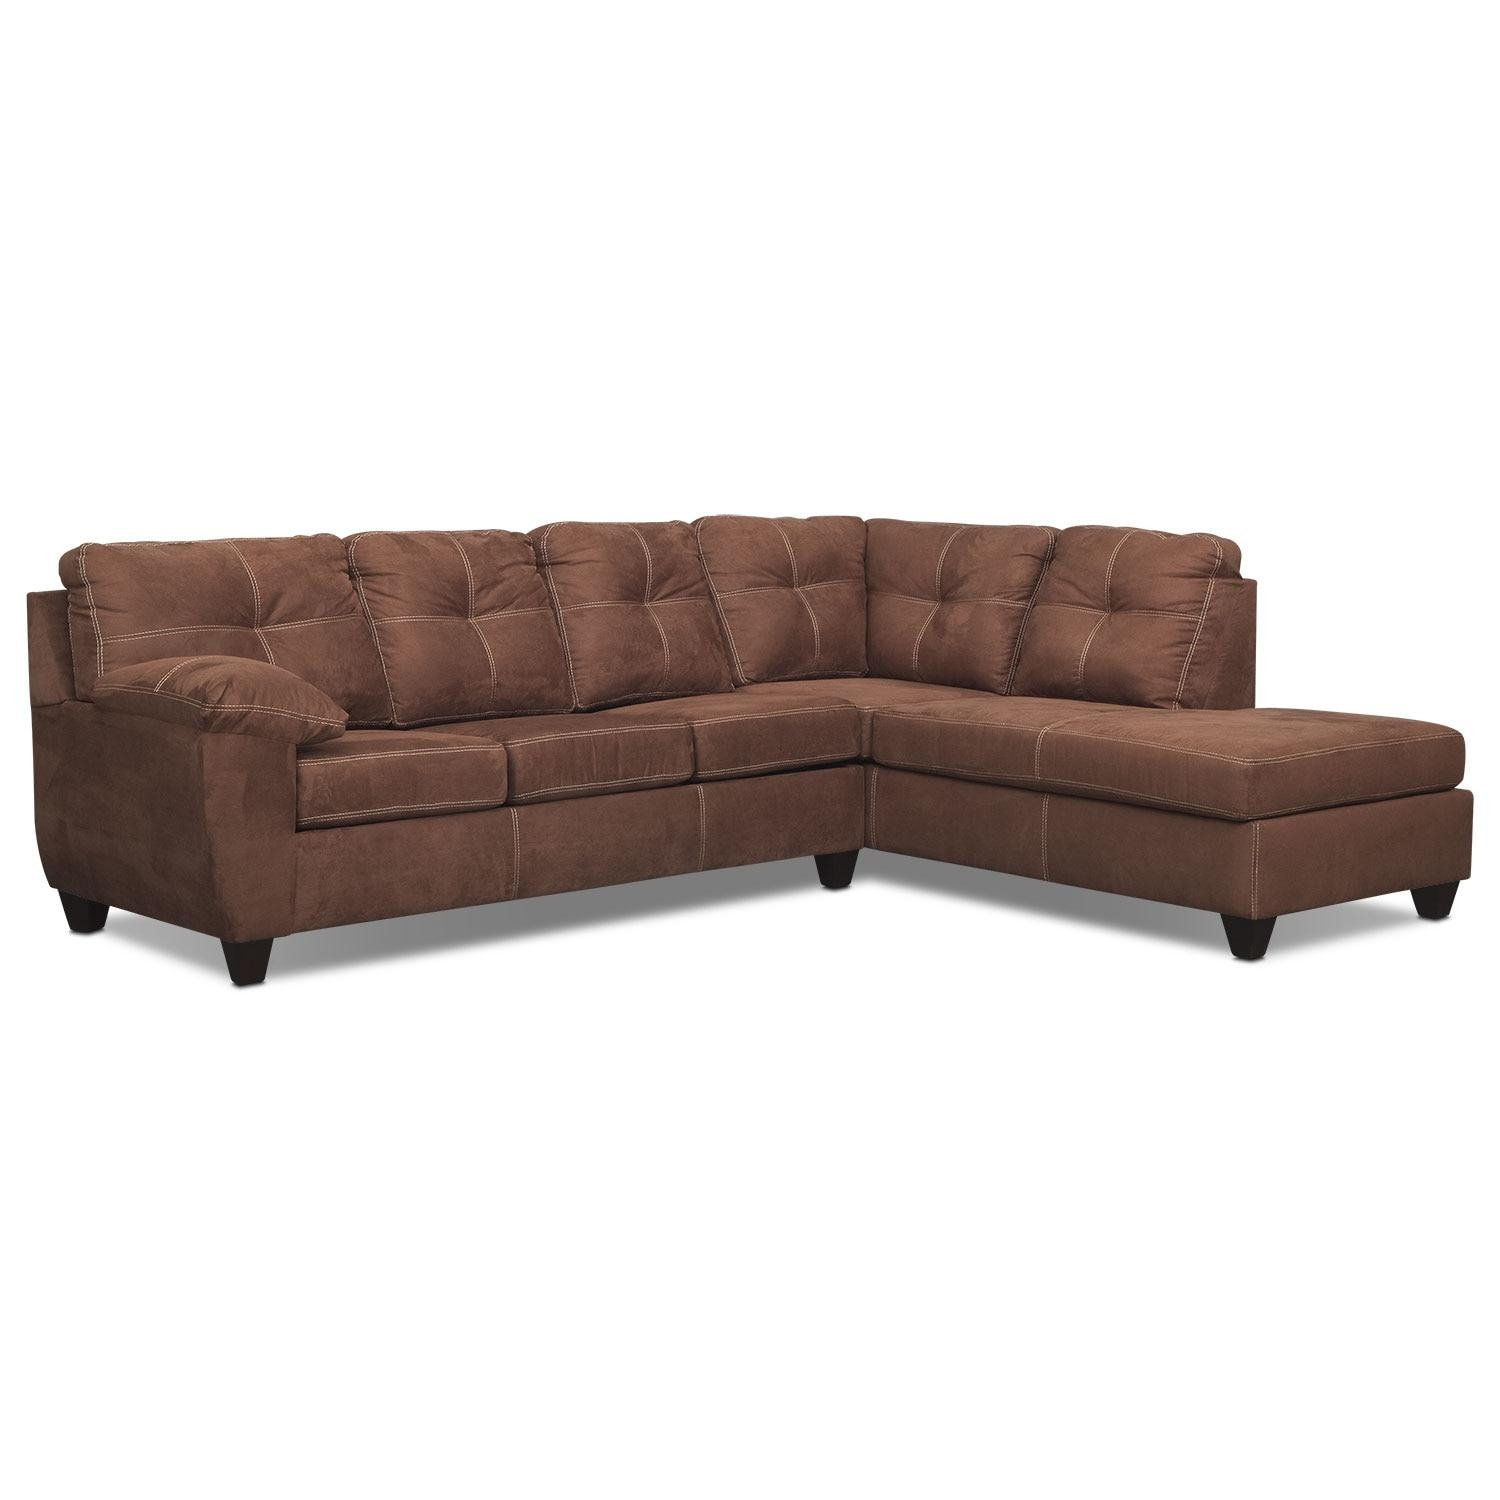 20 Best Collection Of Simmons Sleeper Sofas Sofa Ideas